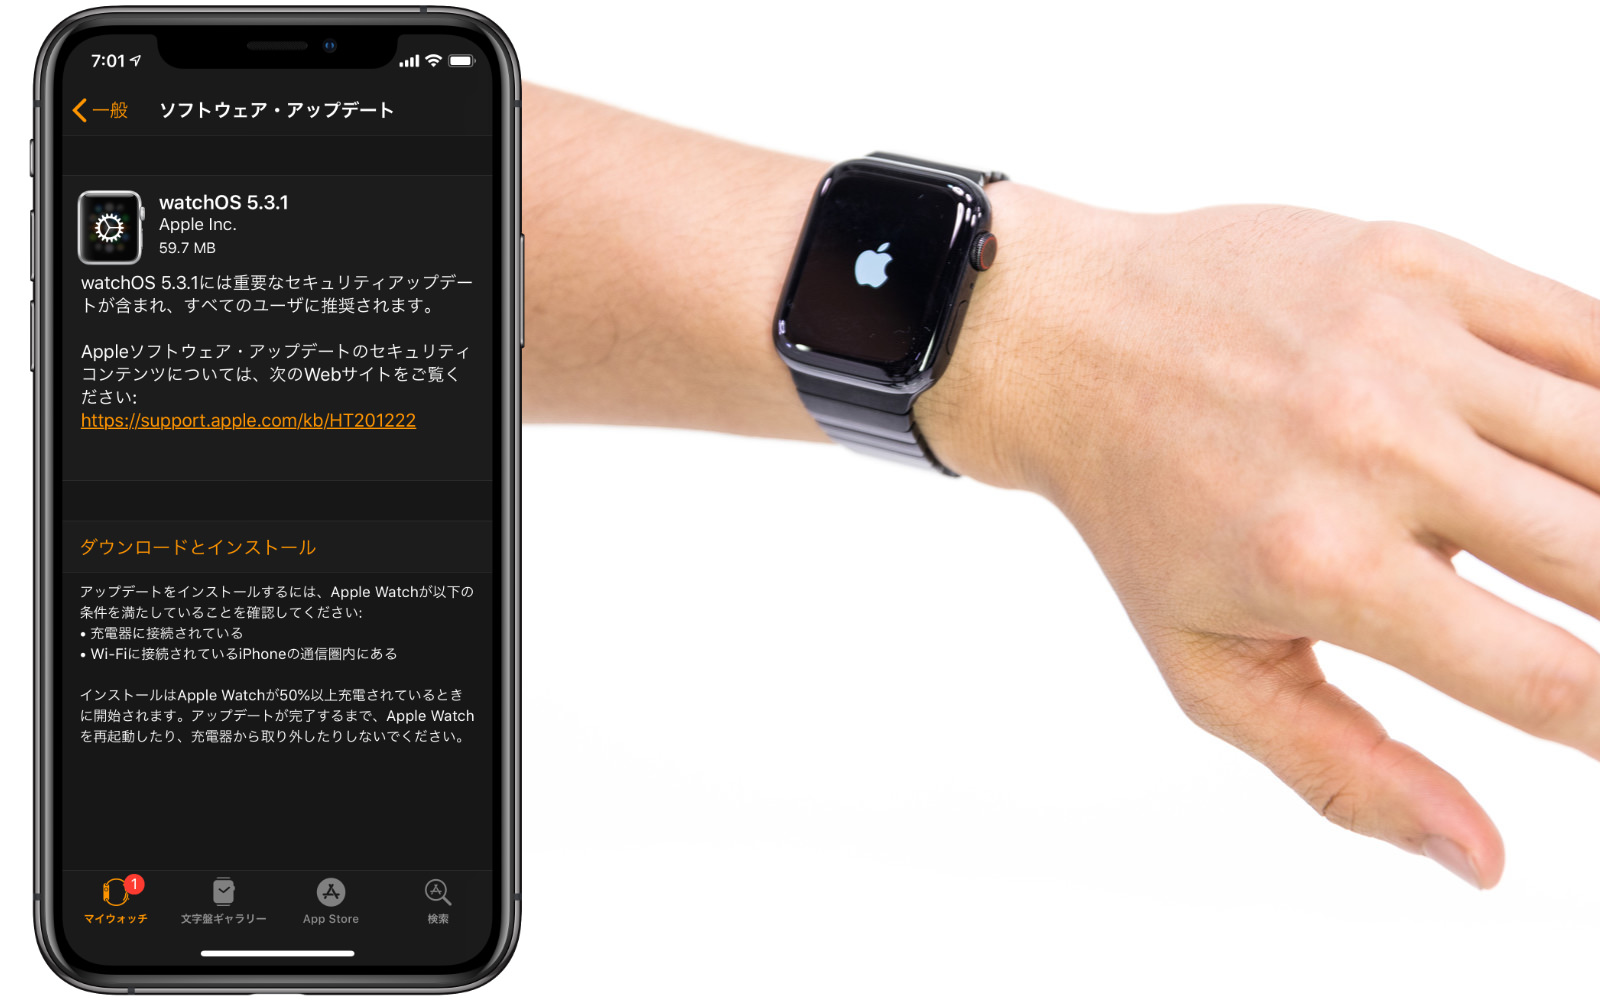 Apple Watch Update 20190827